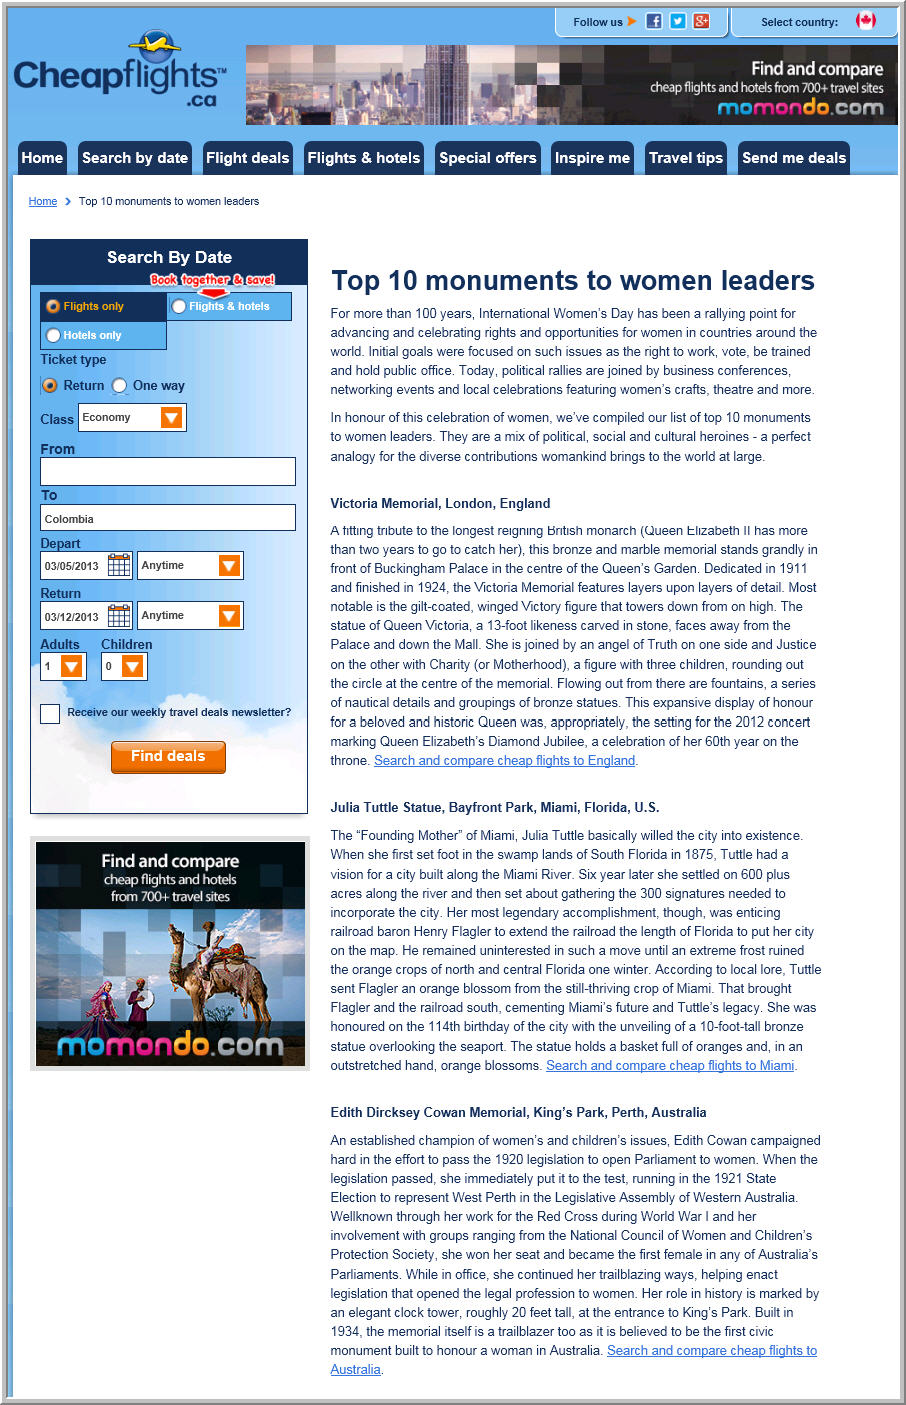 Cheapflights.ca Top 10 Monuments to Women Leaders in honour of International Women's Day